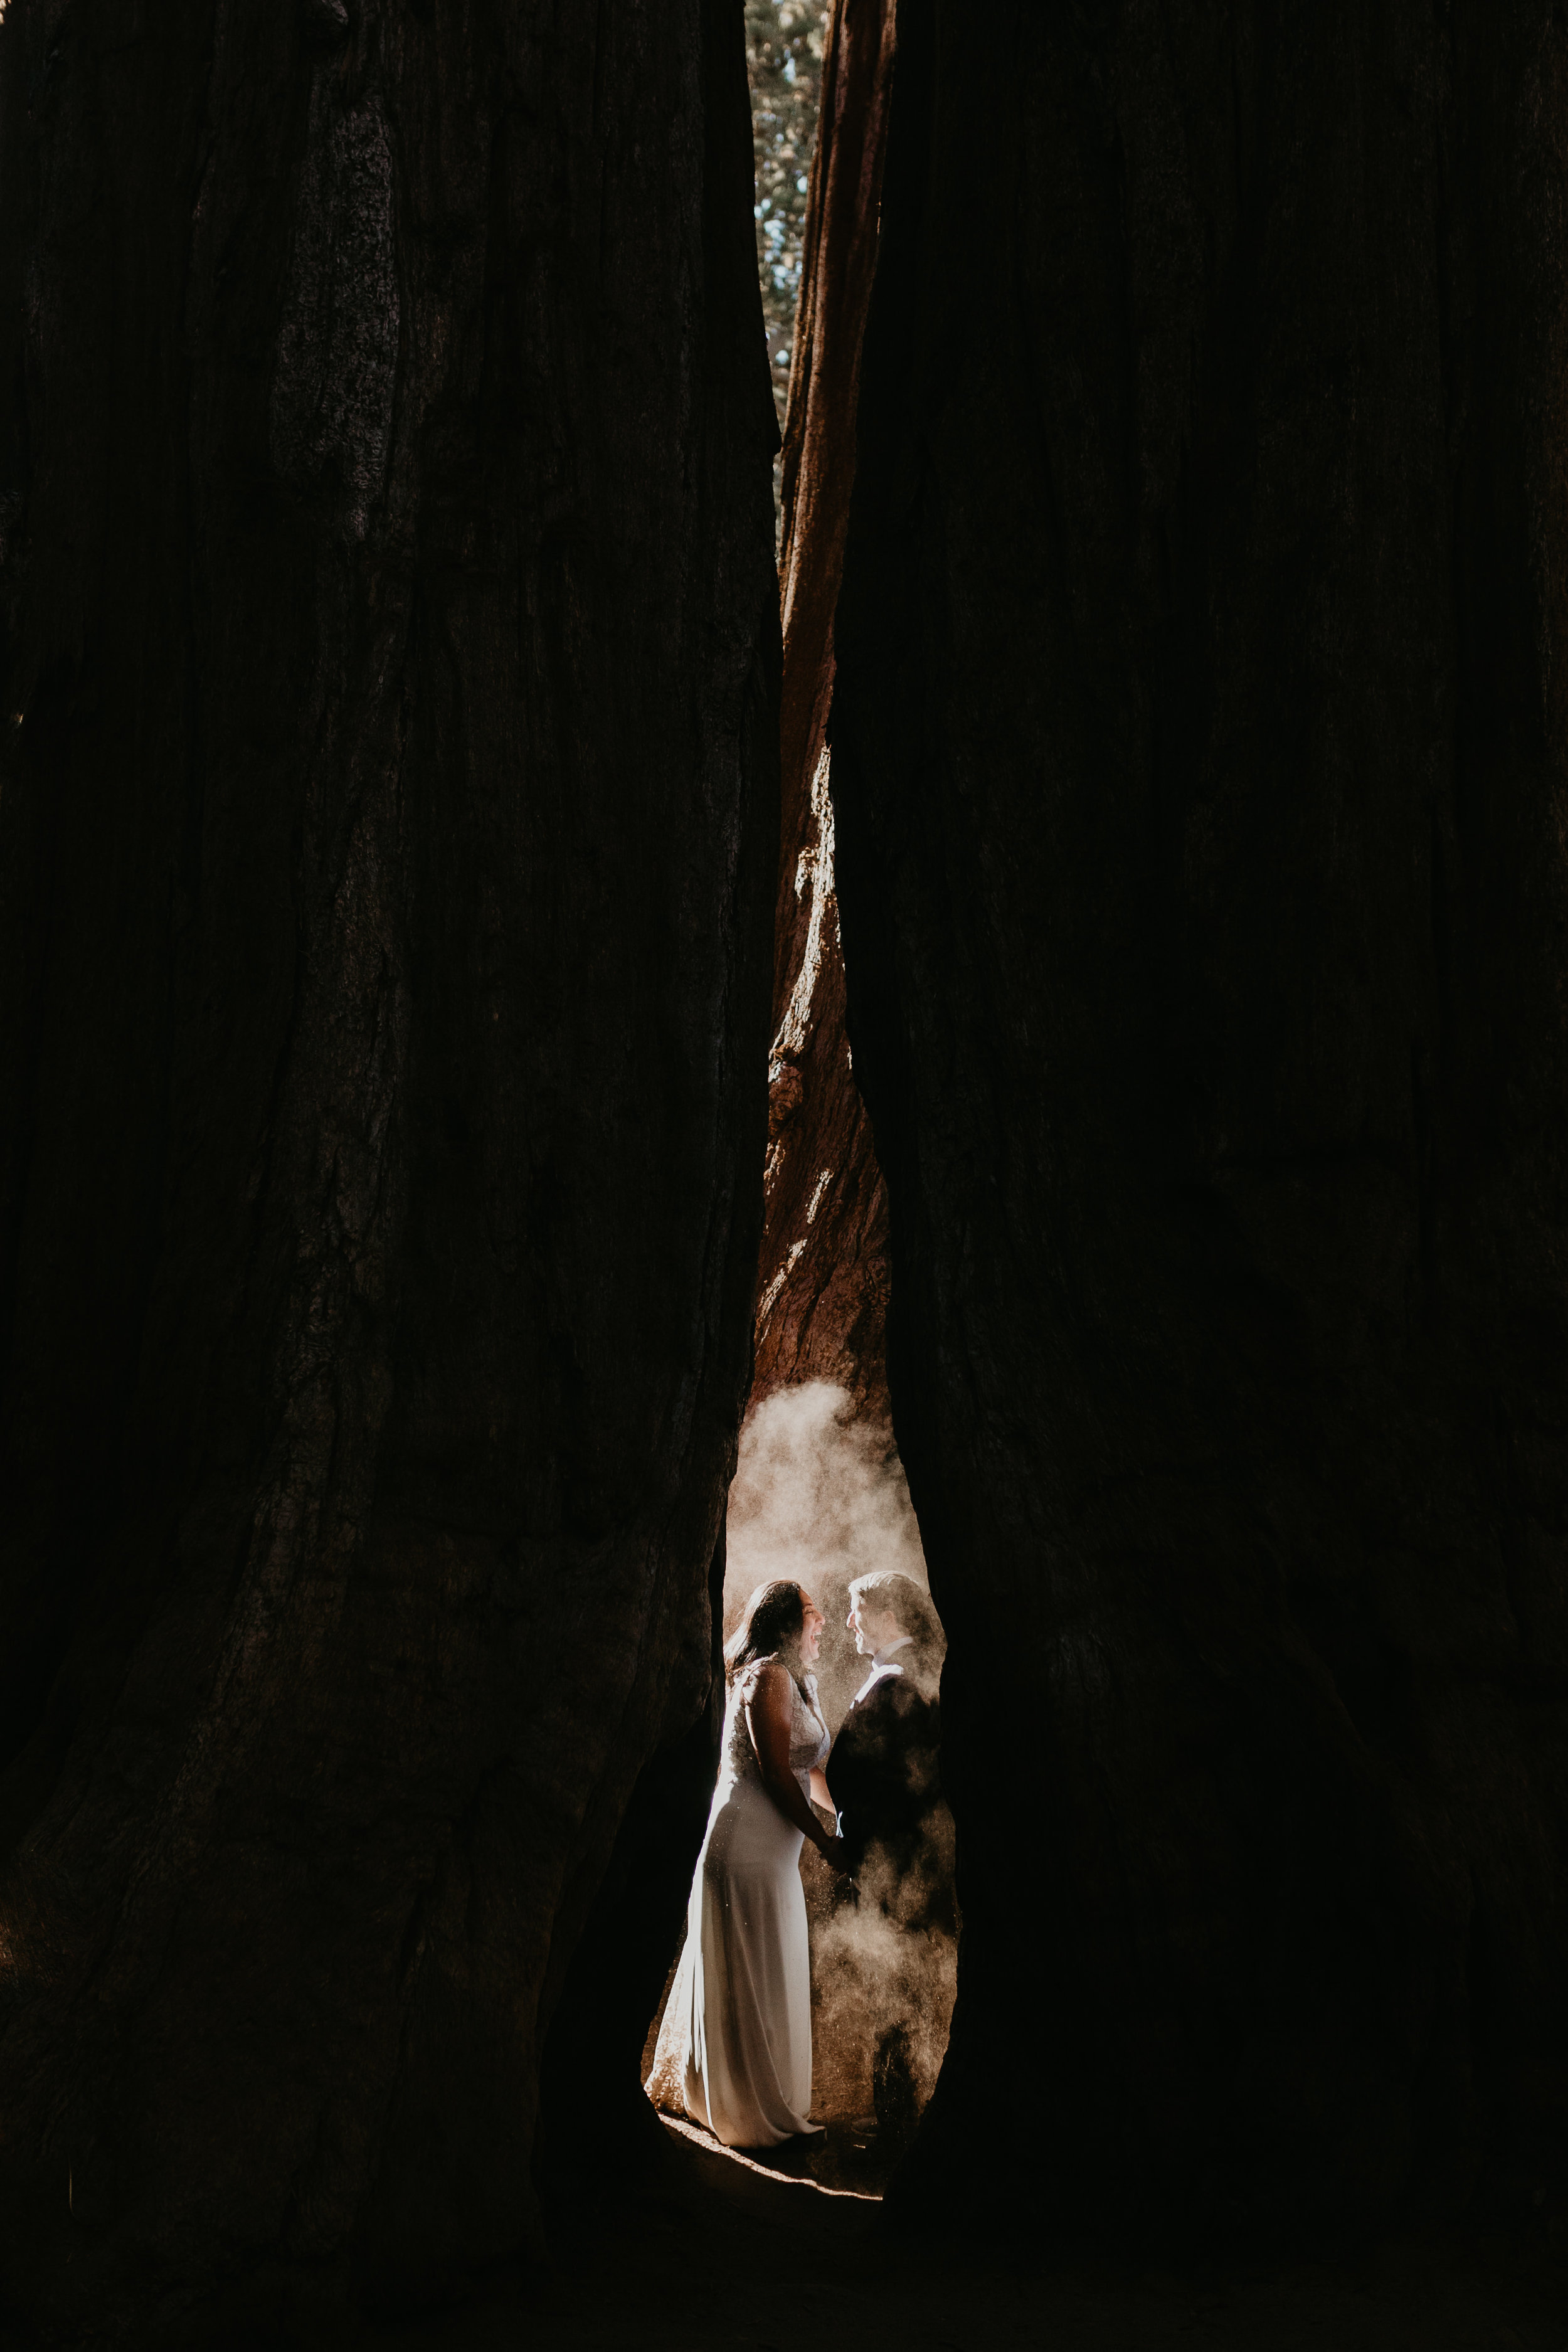 nicole-daacke-photography-sequoia-national-park-adventurous-elopement-sequoia-elopement-photographer-redwoods-california-intimate-wedding-photographer-18.jpg